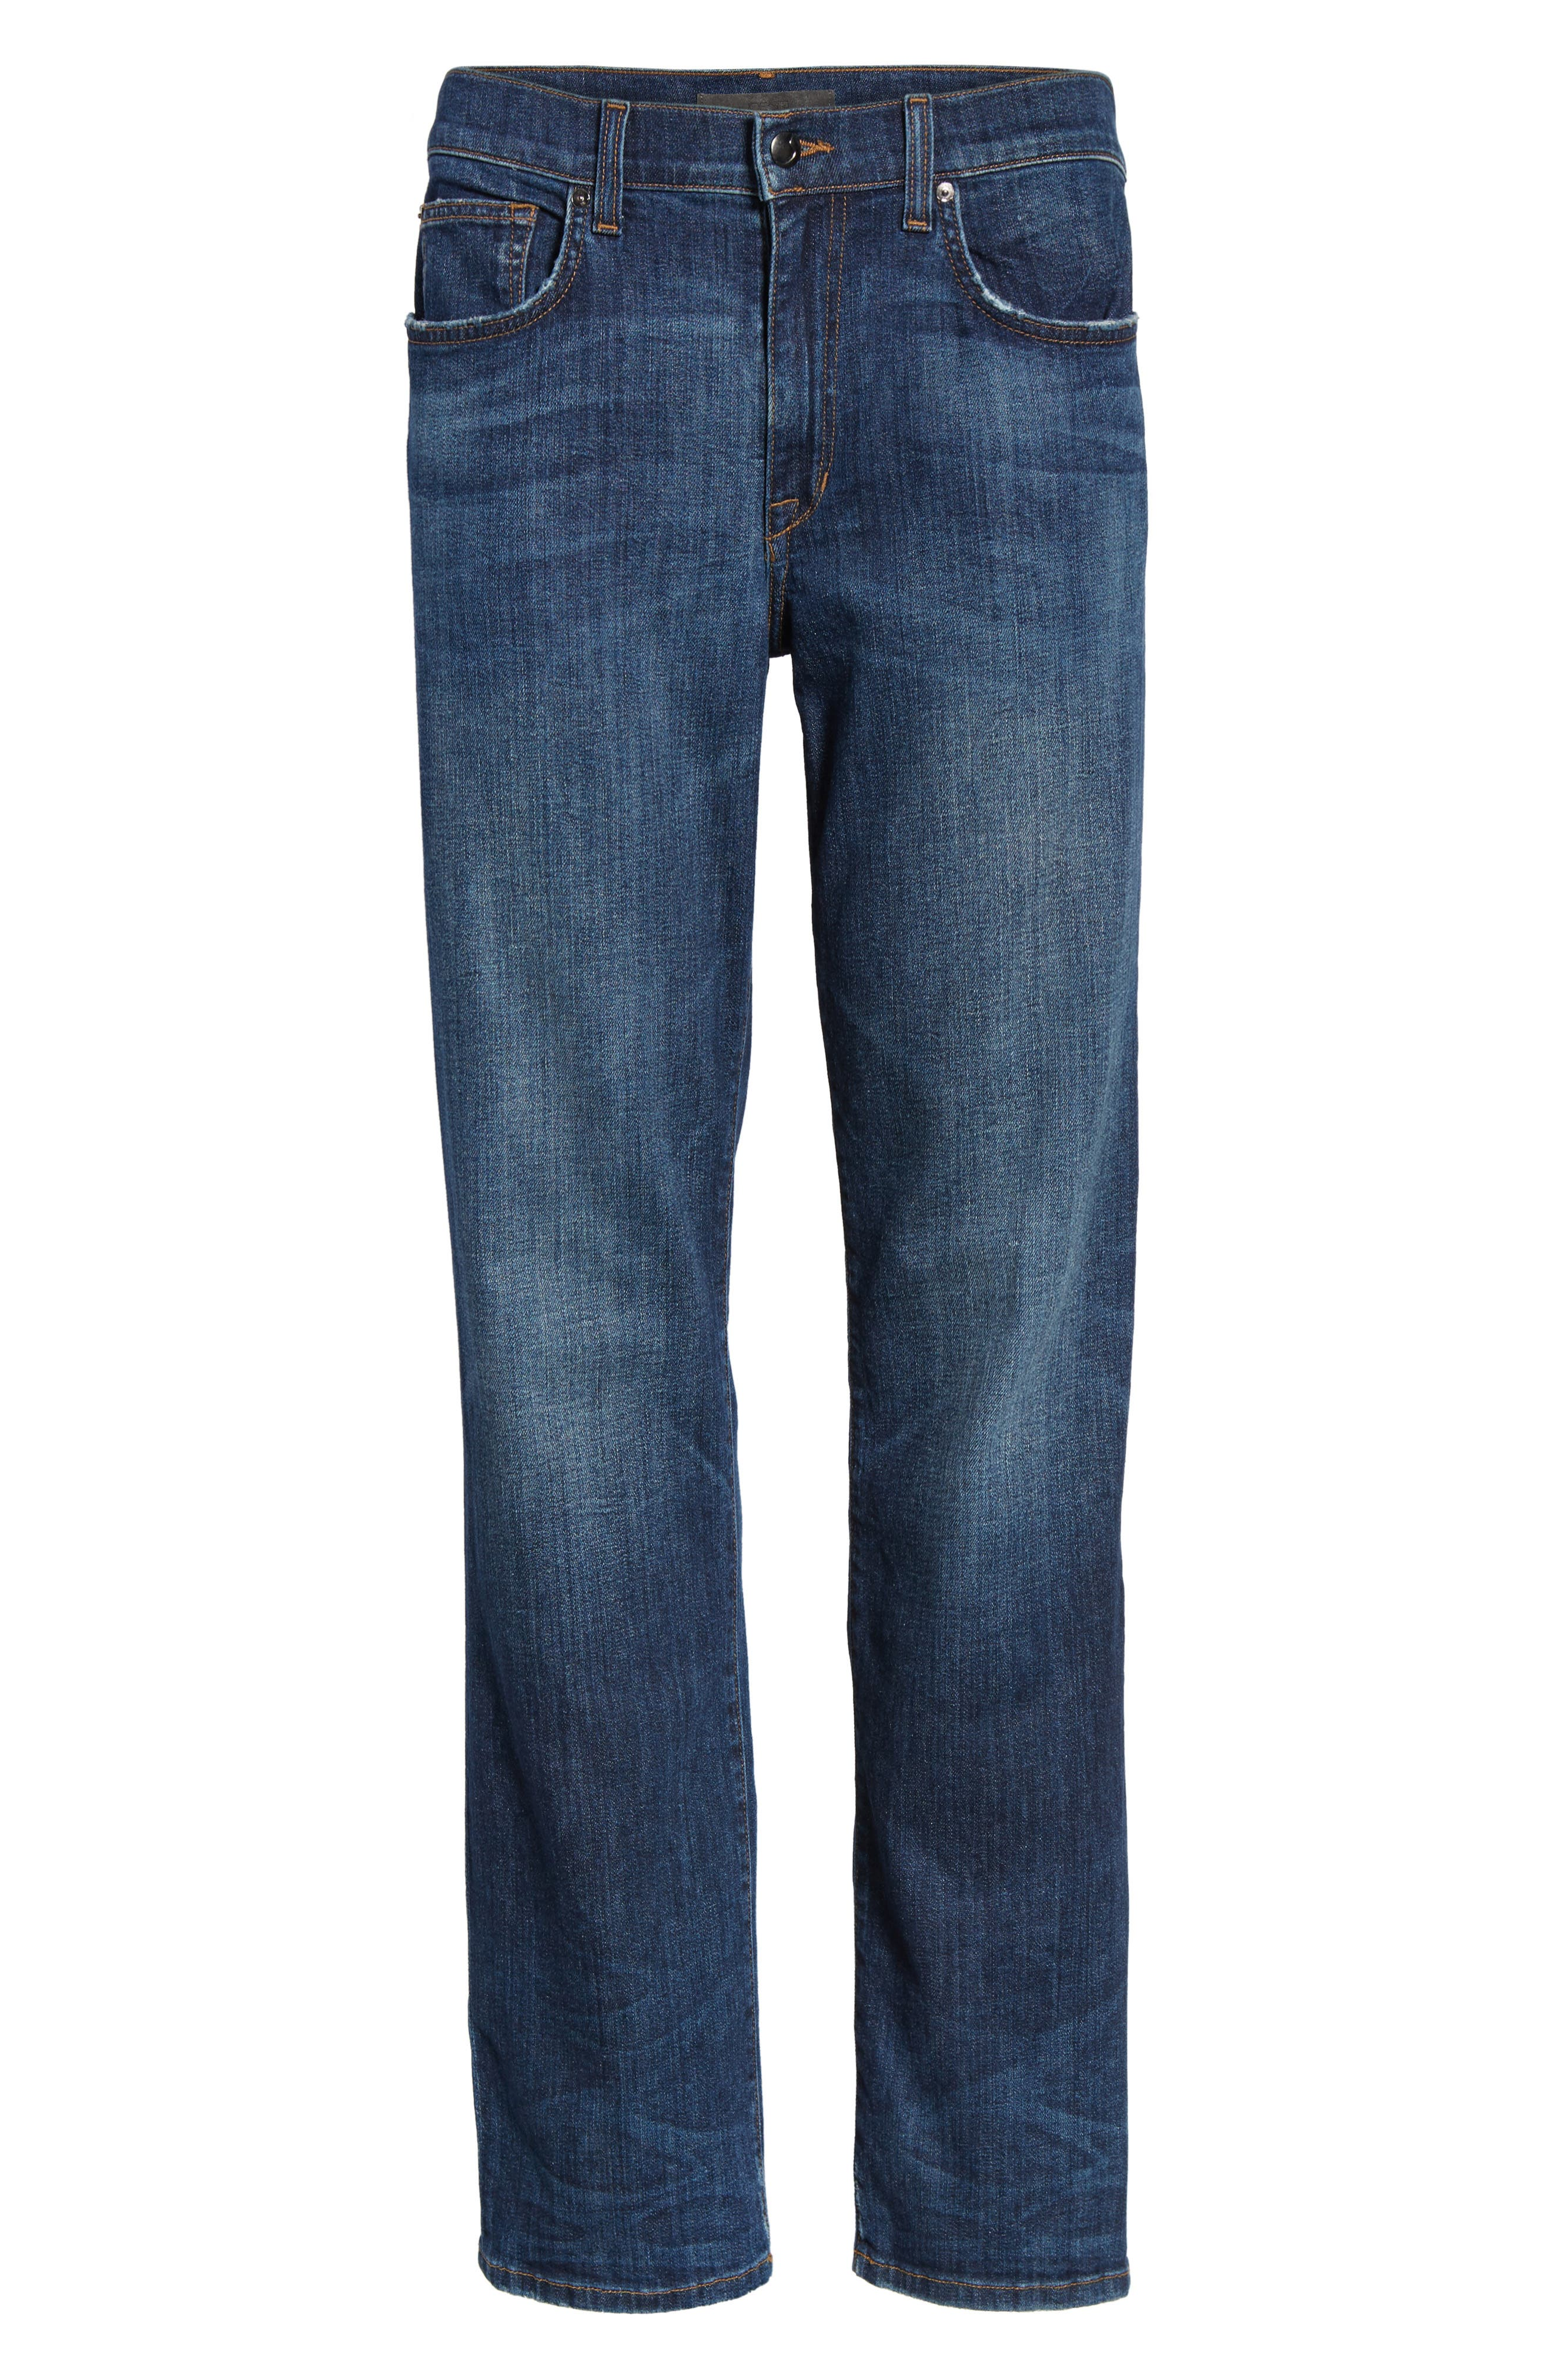 Classic Straight Fit Jeans,                             Alternate thumbnail 6, color,                             Vizzini